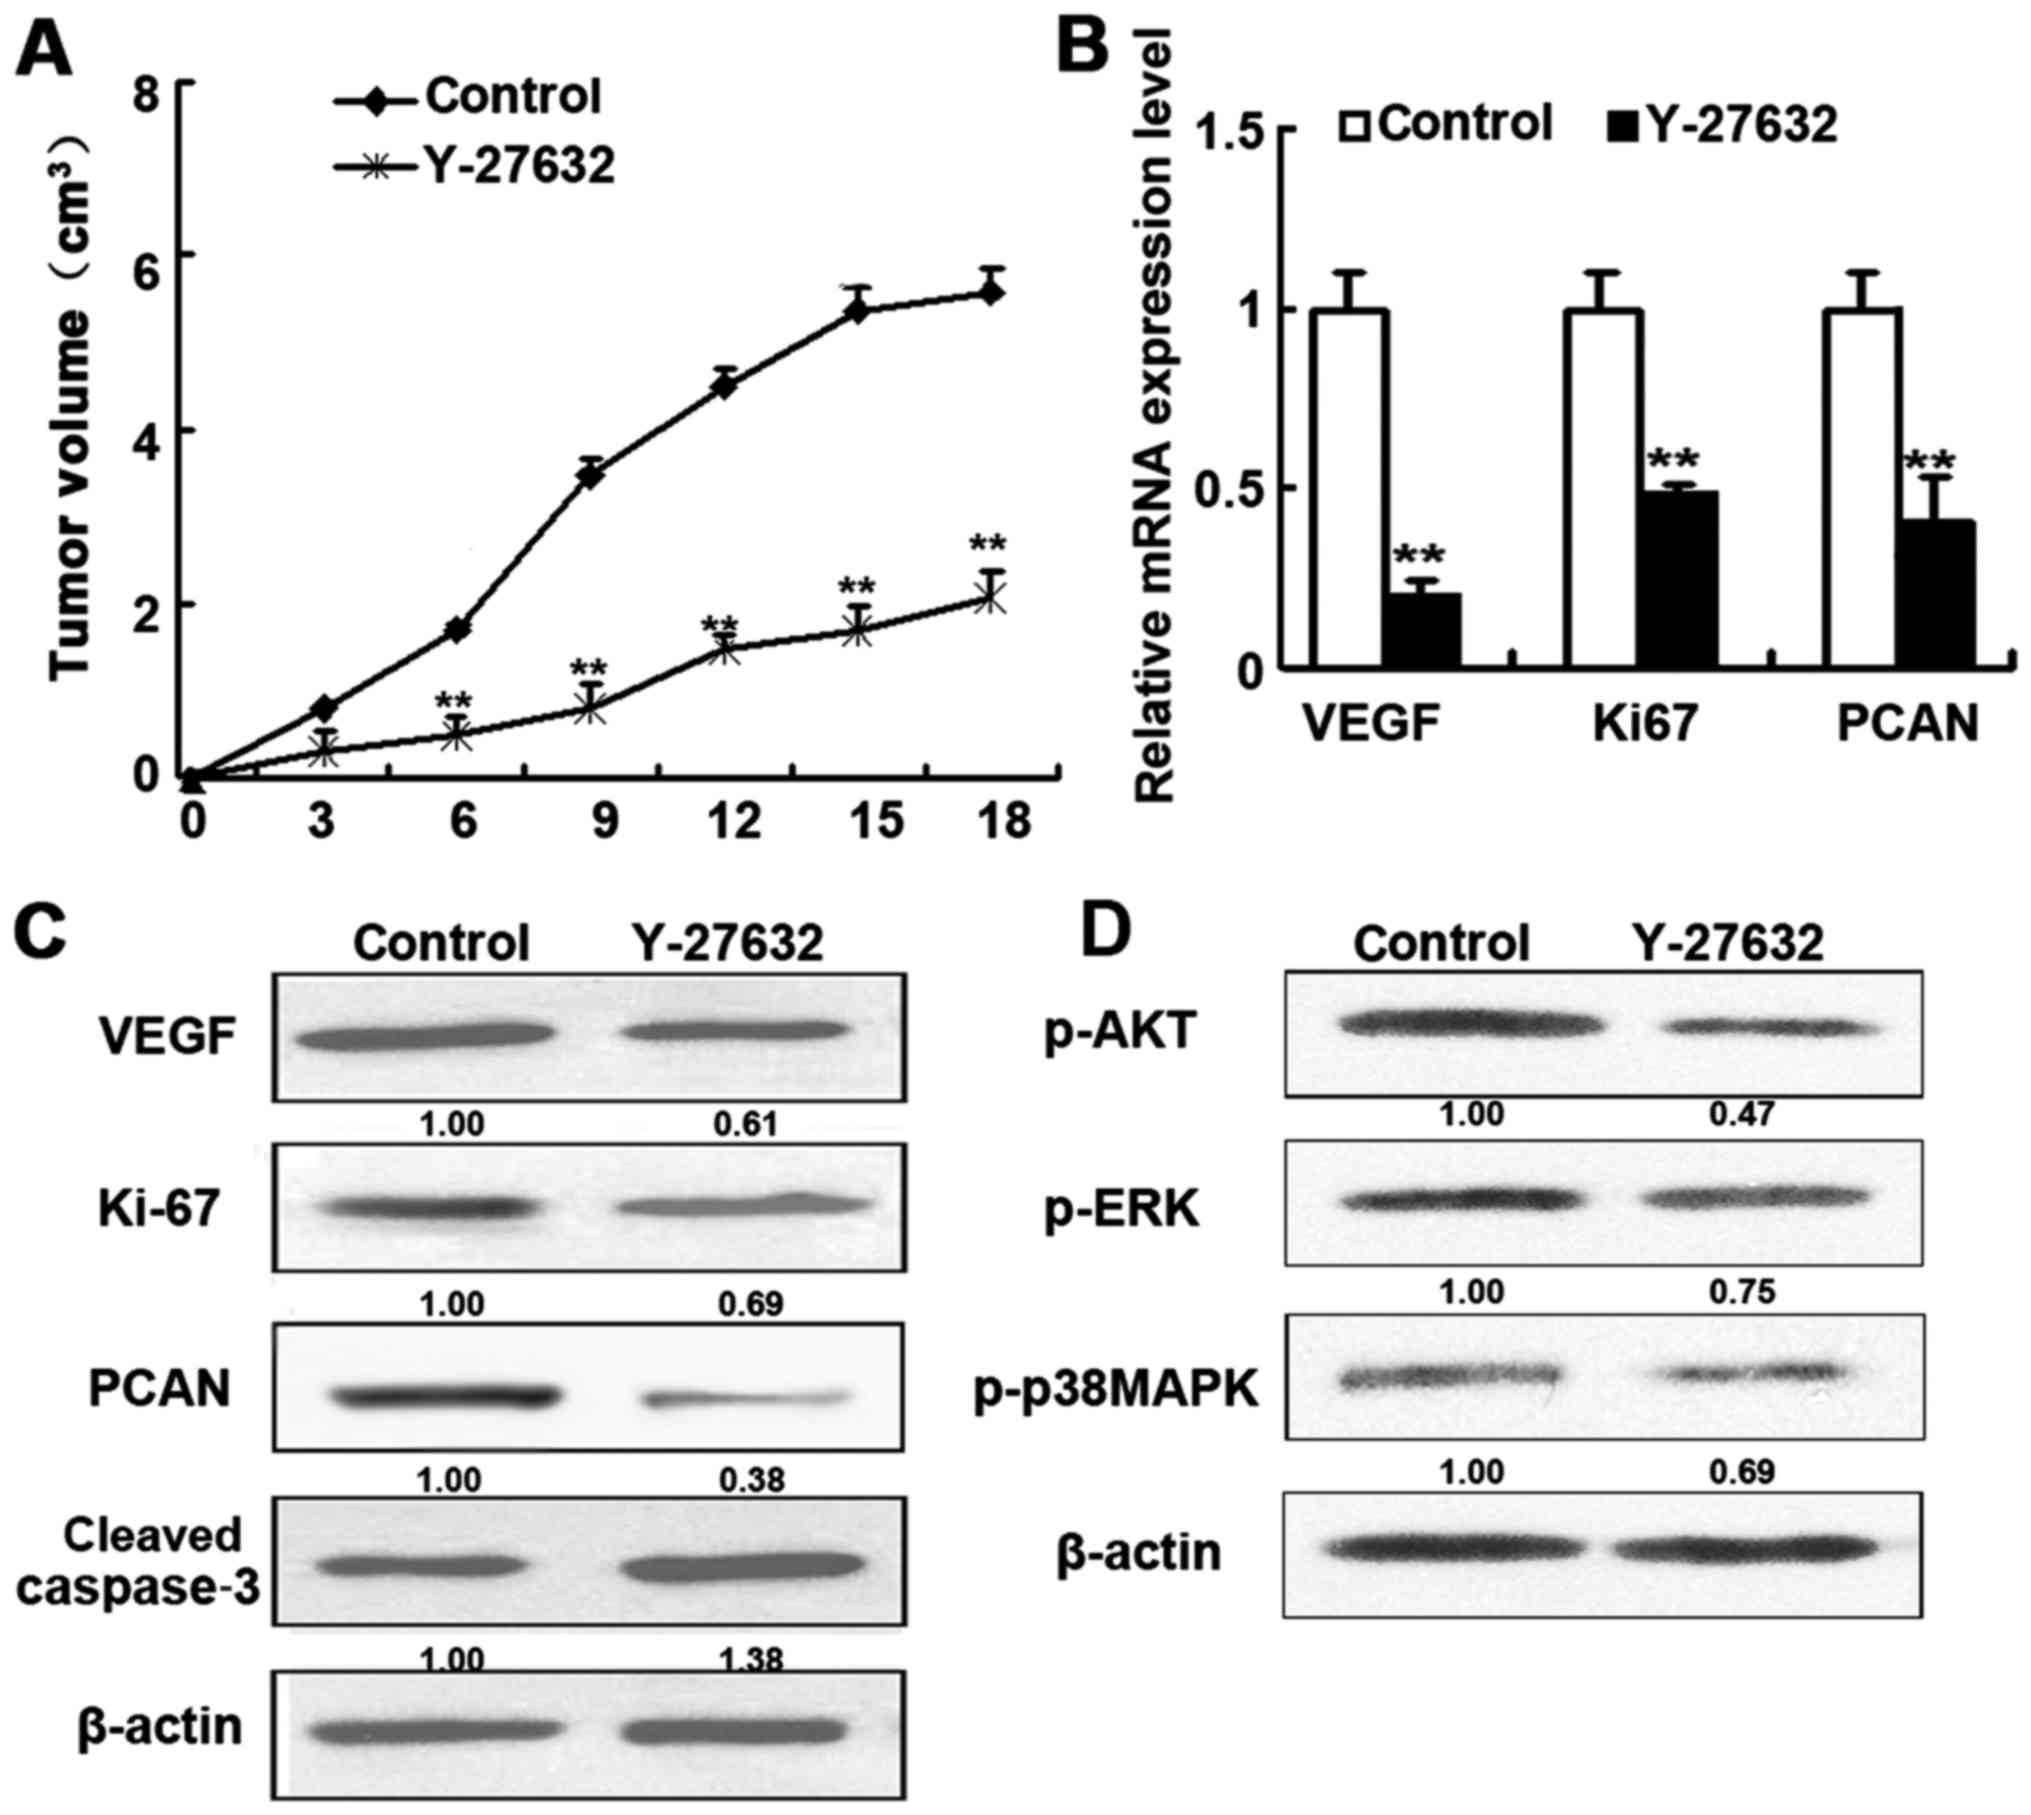 ROCK inhibition as a potential therapeutic target involved